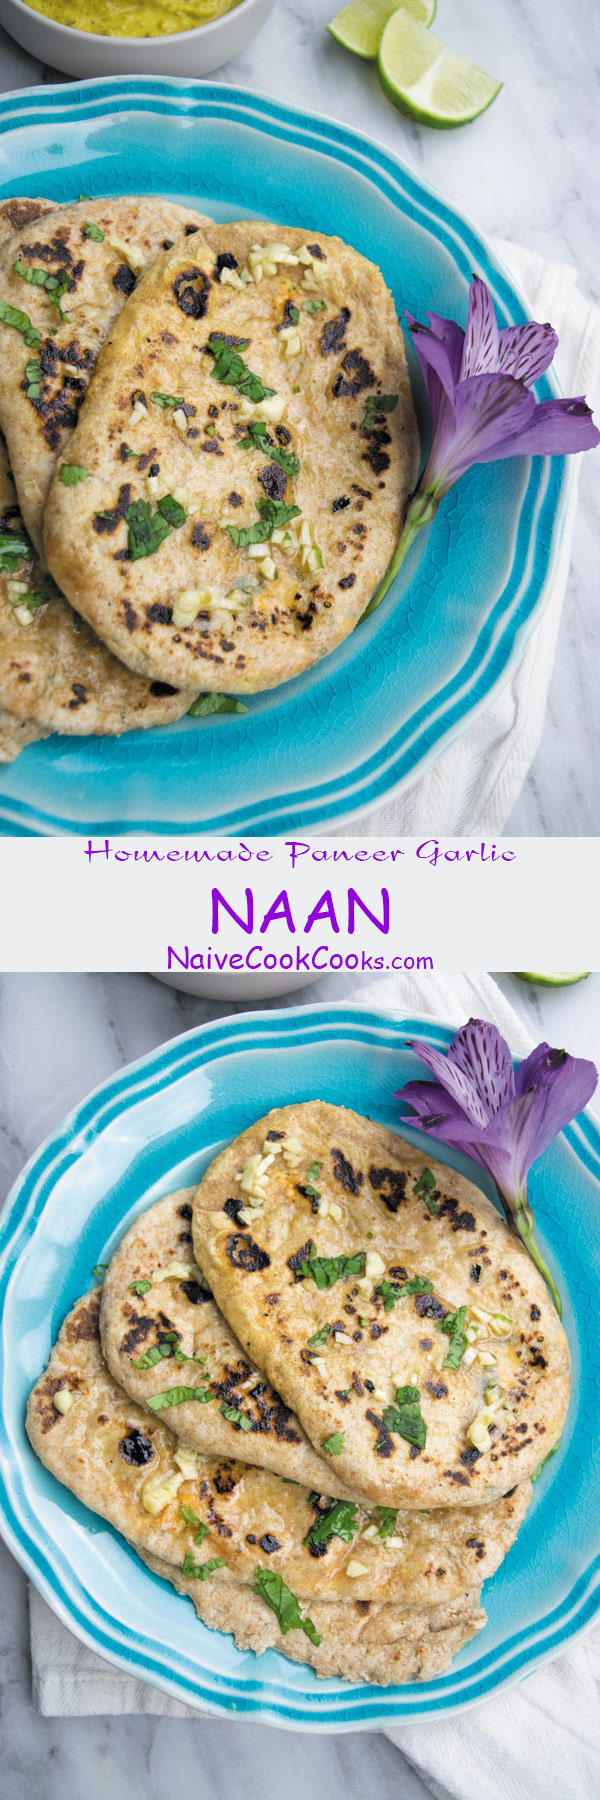 homemade paneer garlic naan long pin